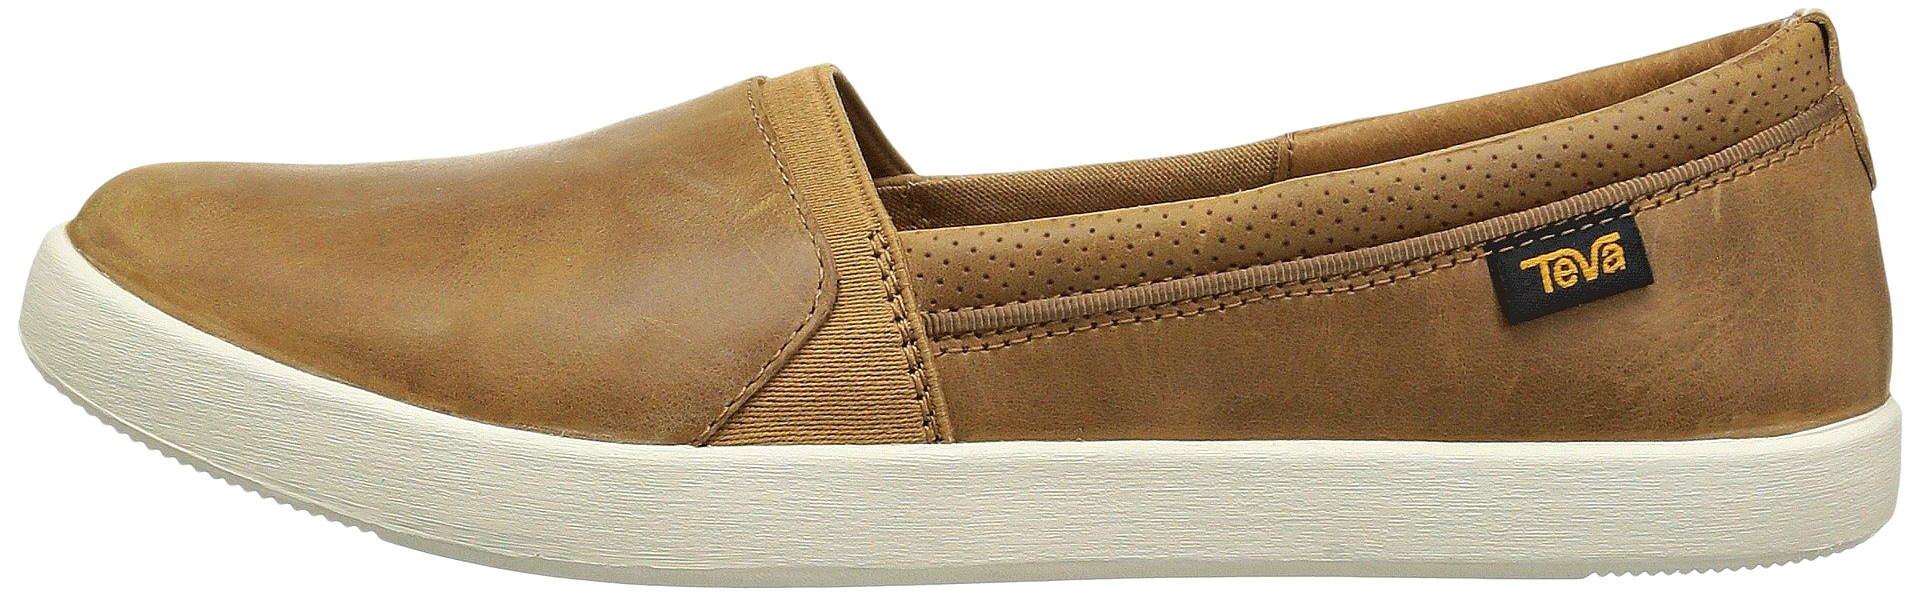 Best Slip On Sneakers for Travel  These are the Most Comfortable Styles a48b2eff0